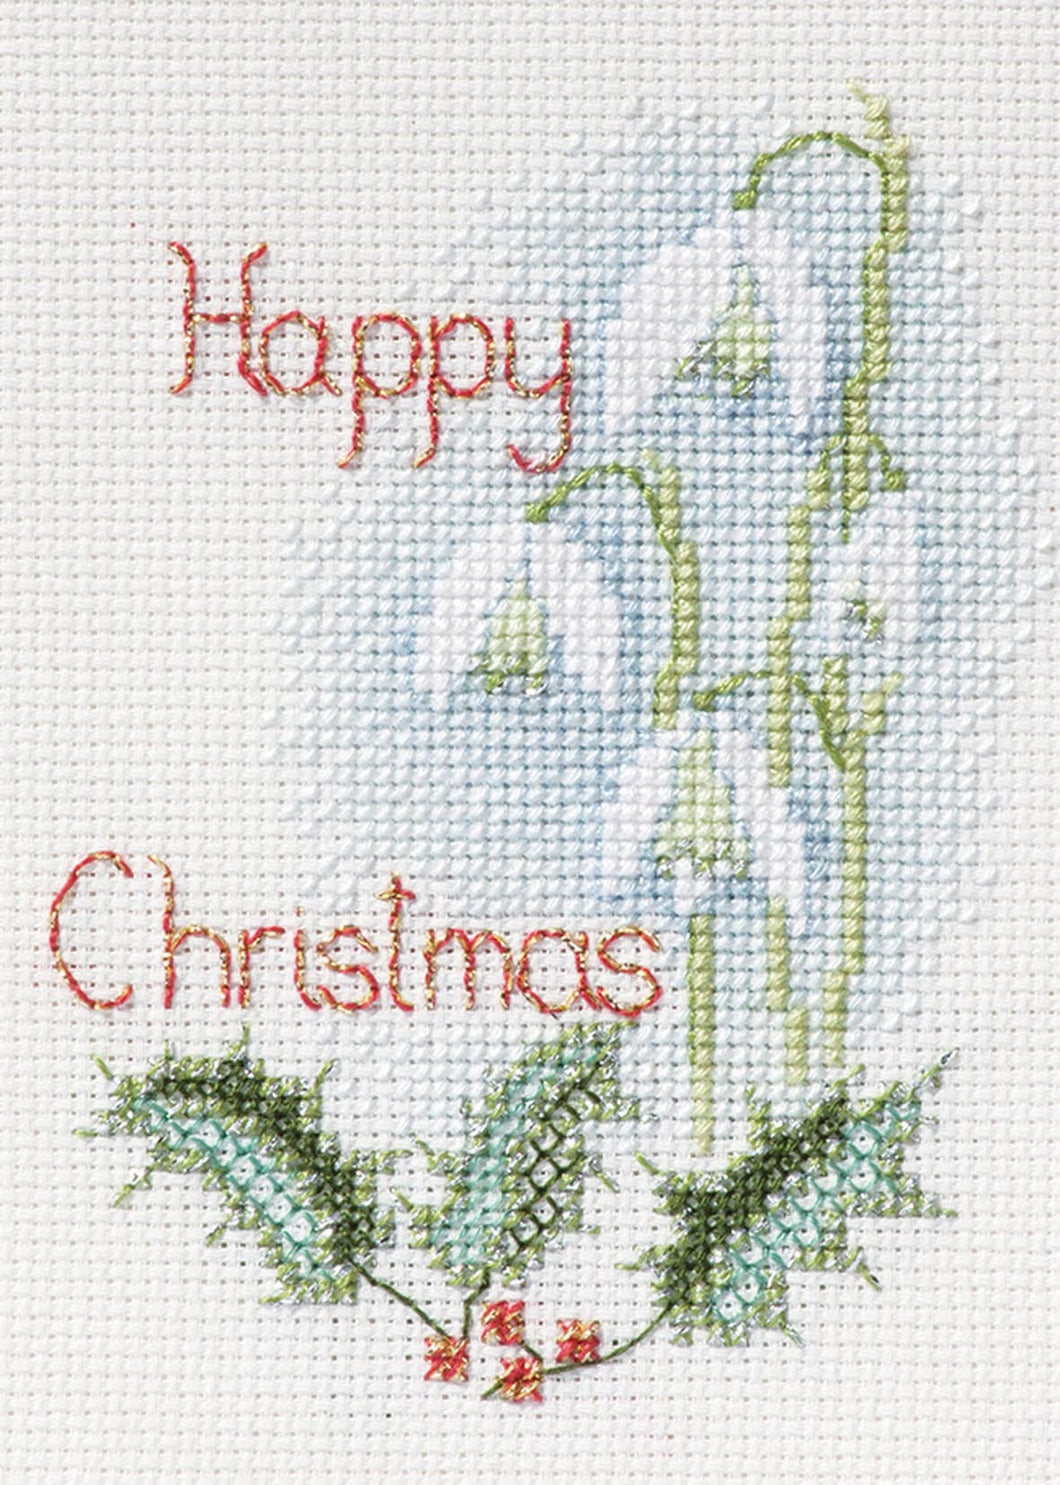 Snowdrops - Christmas Card Cross Stitch Kit